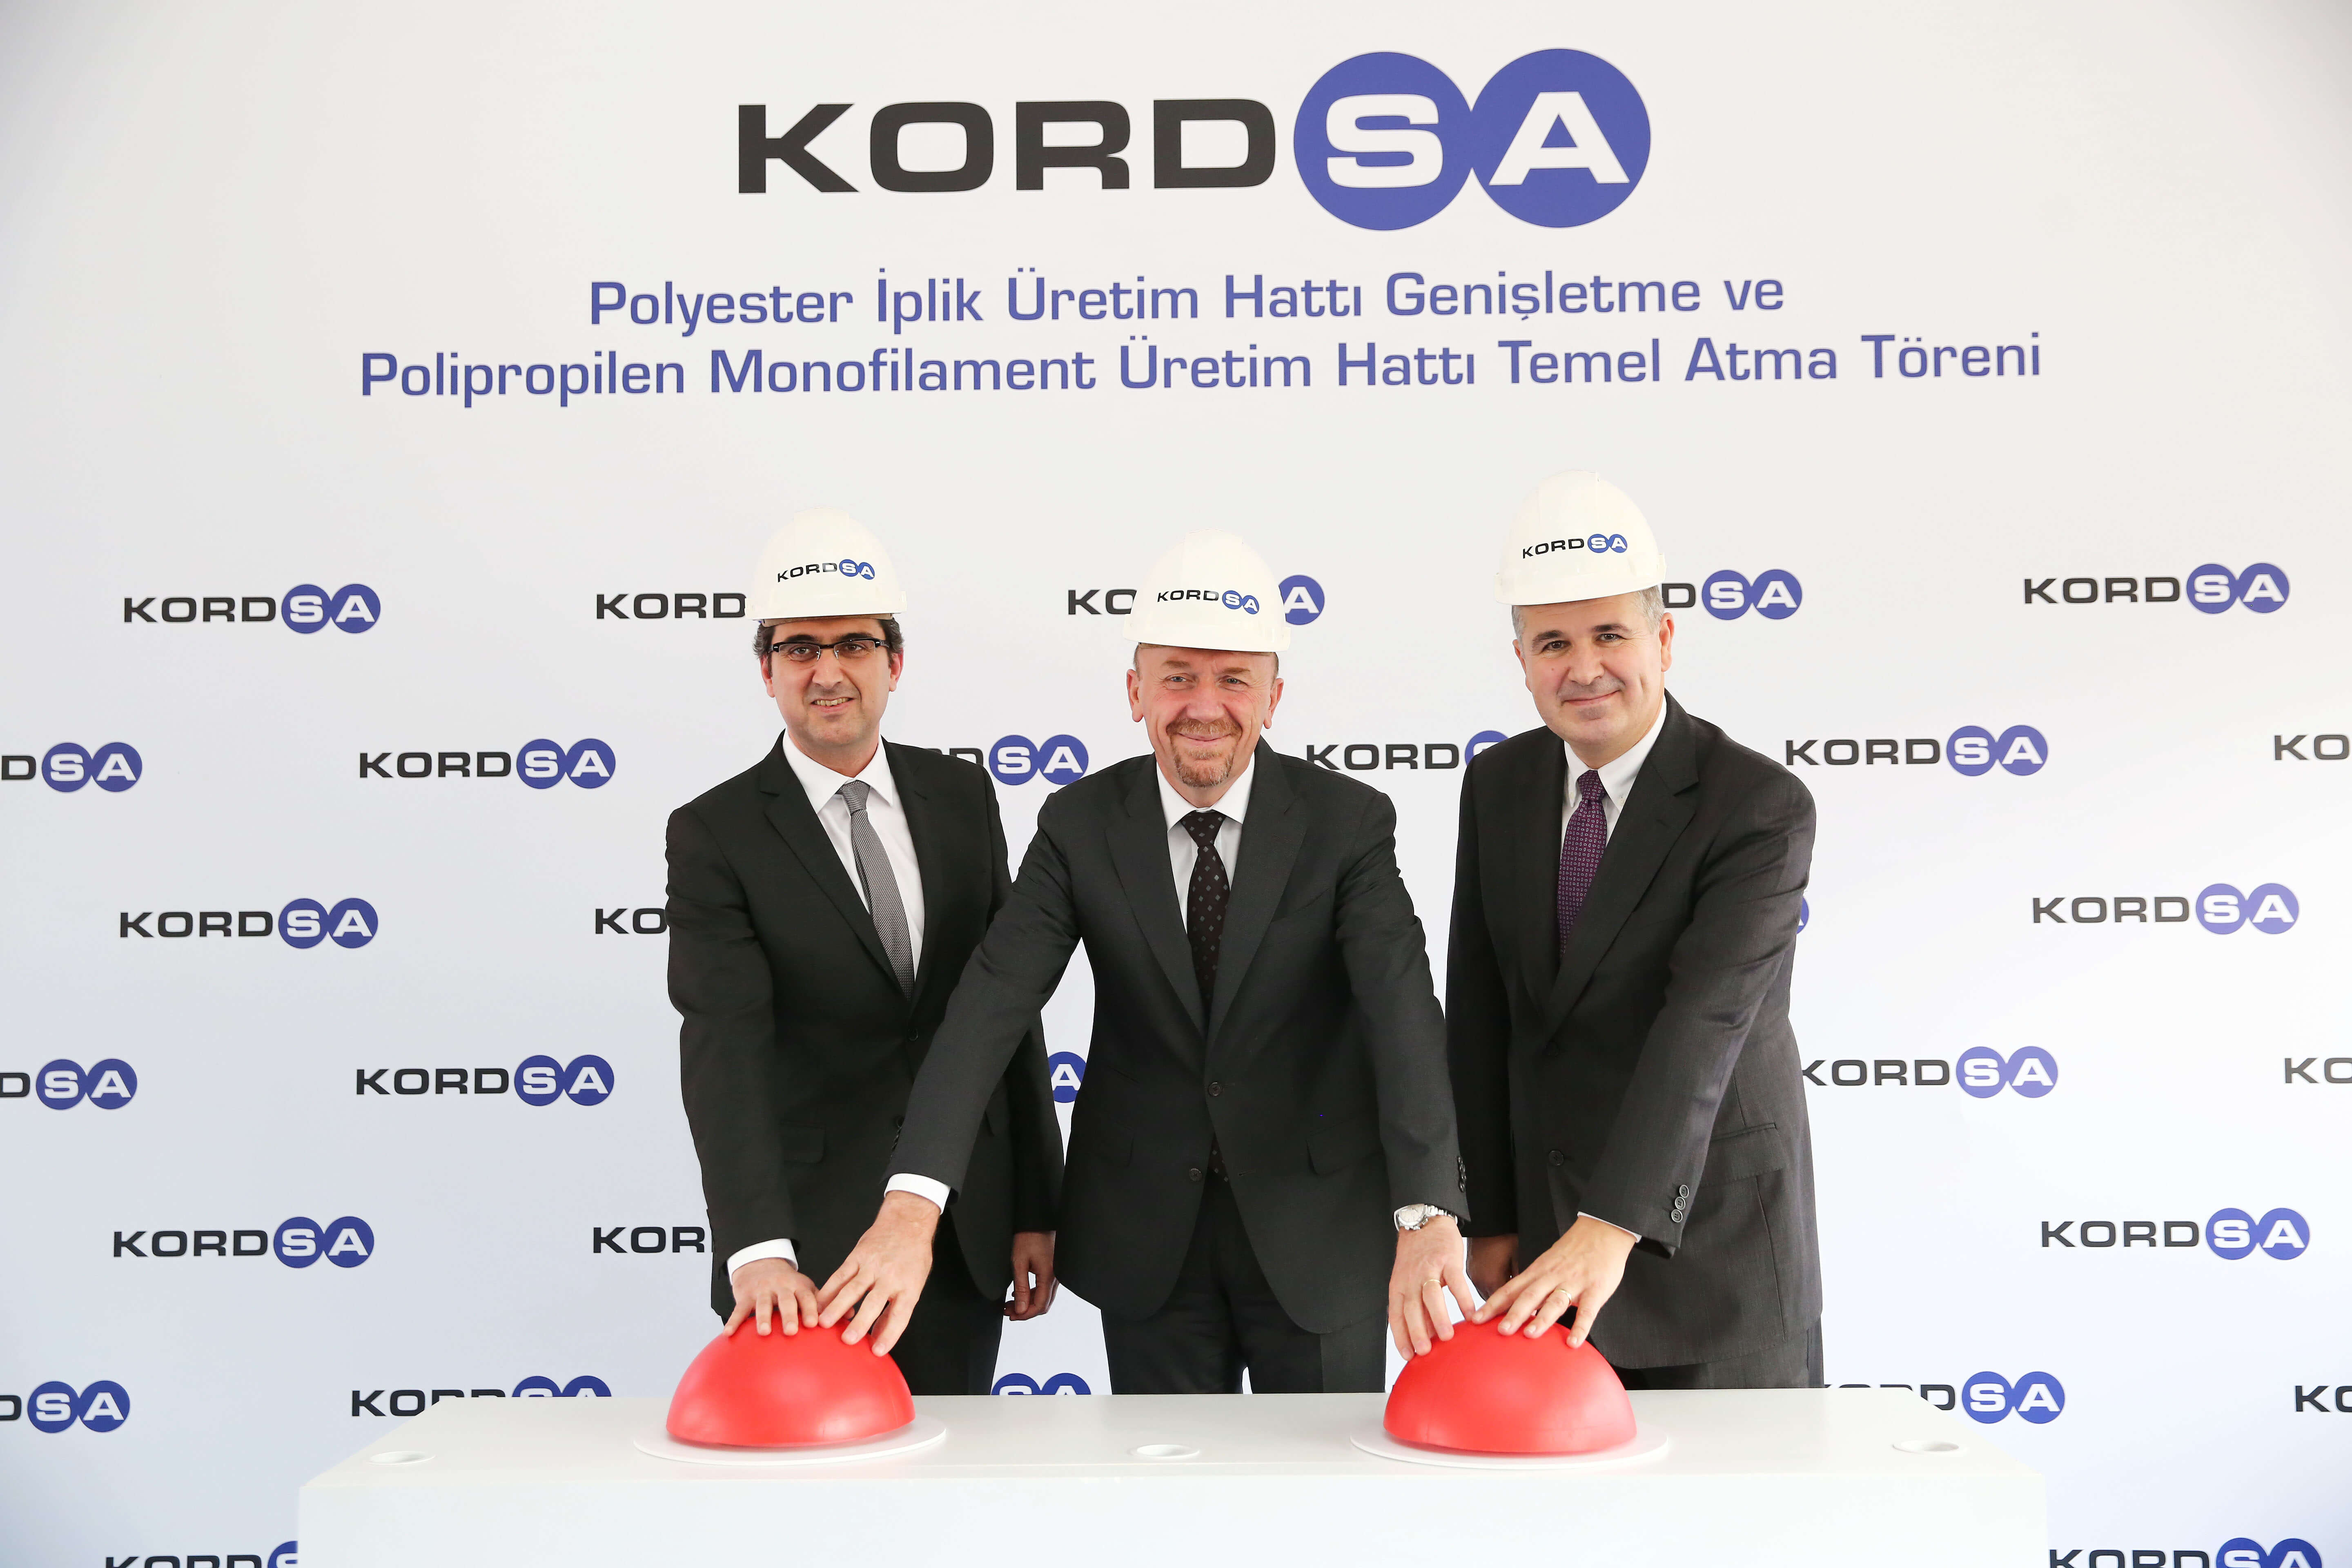 Kordsa's investments continue at a great pace through capacity increase